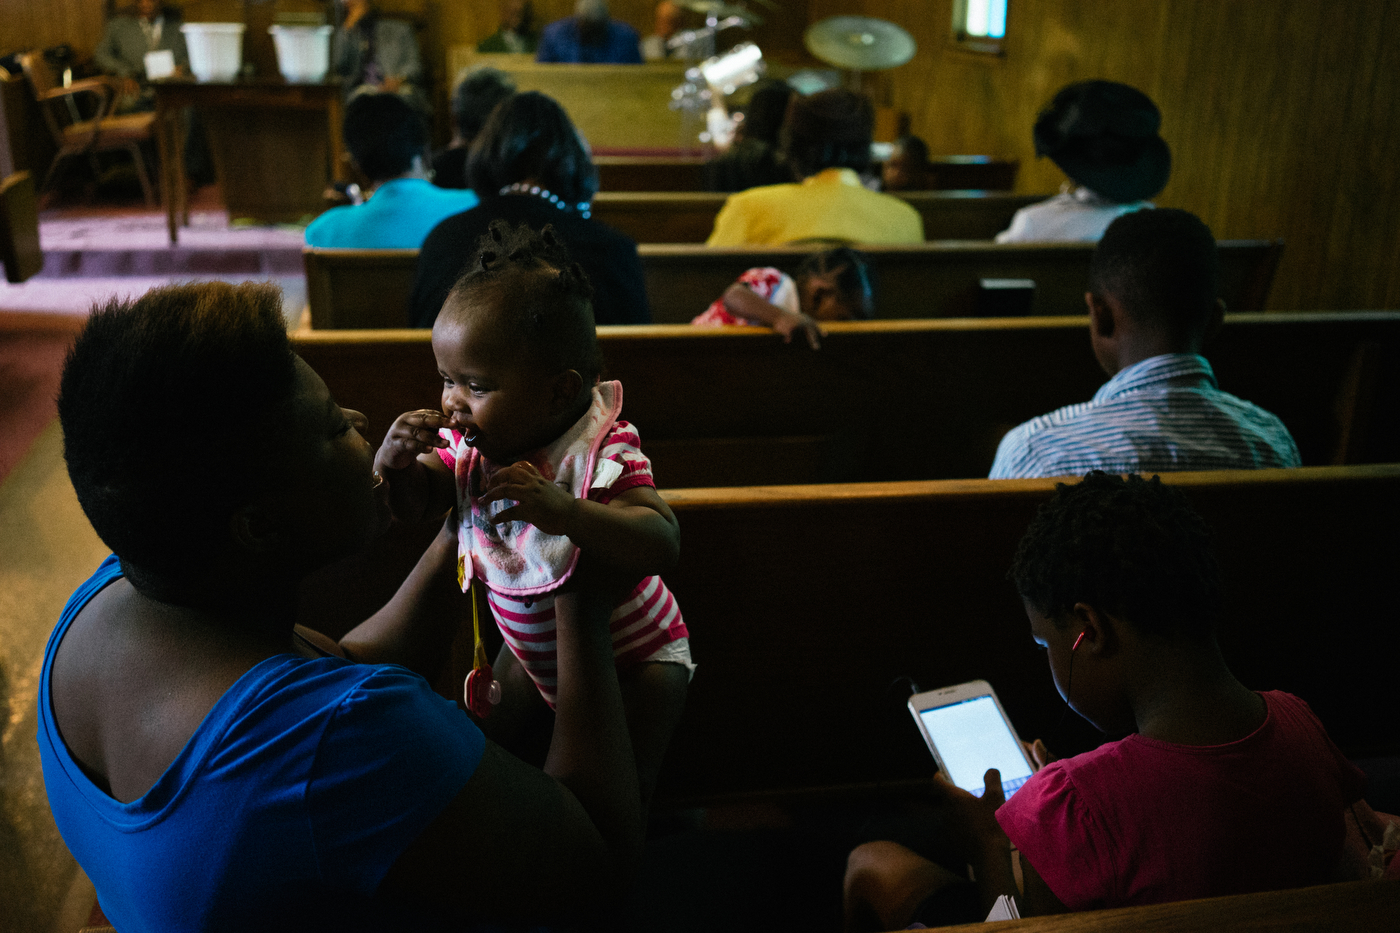 A woman plays with her granddaughter during Sunday worship in Ferguson.